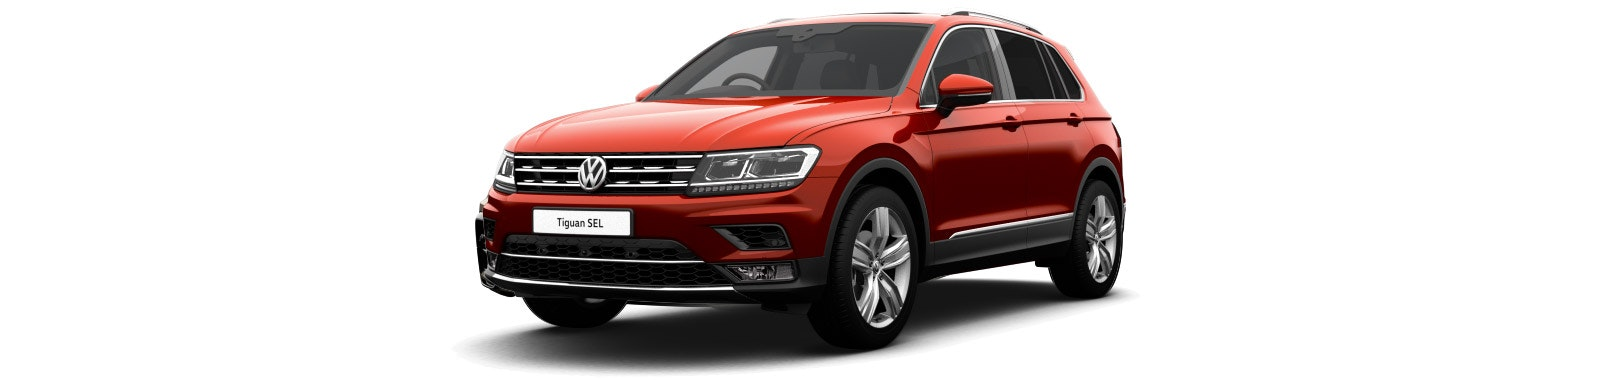 Ruby Red VW Tiguan